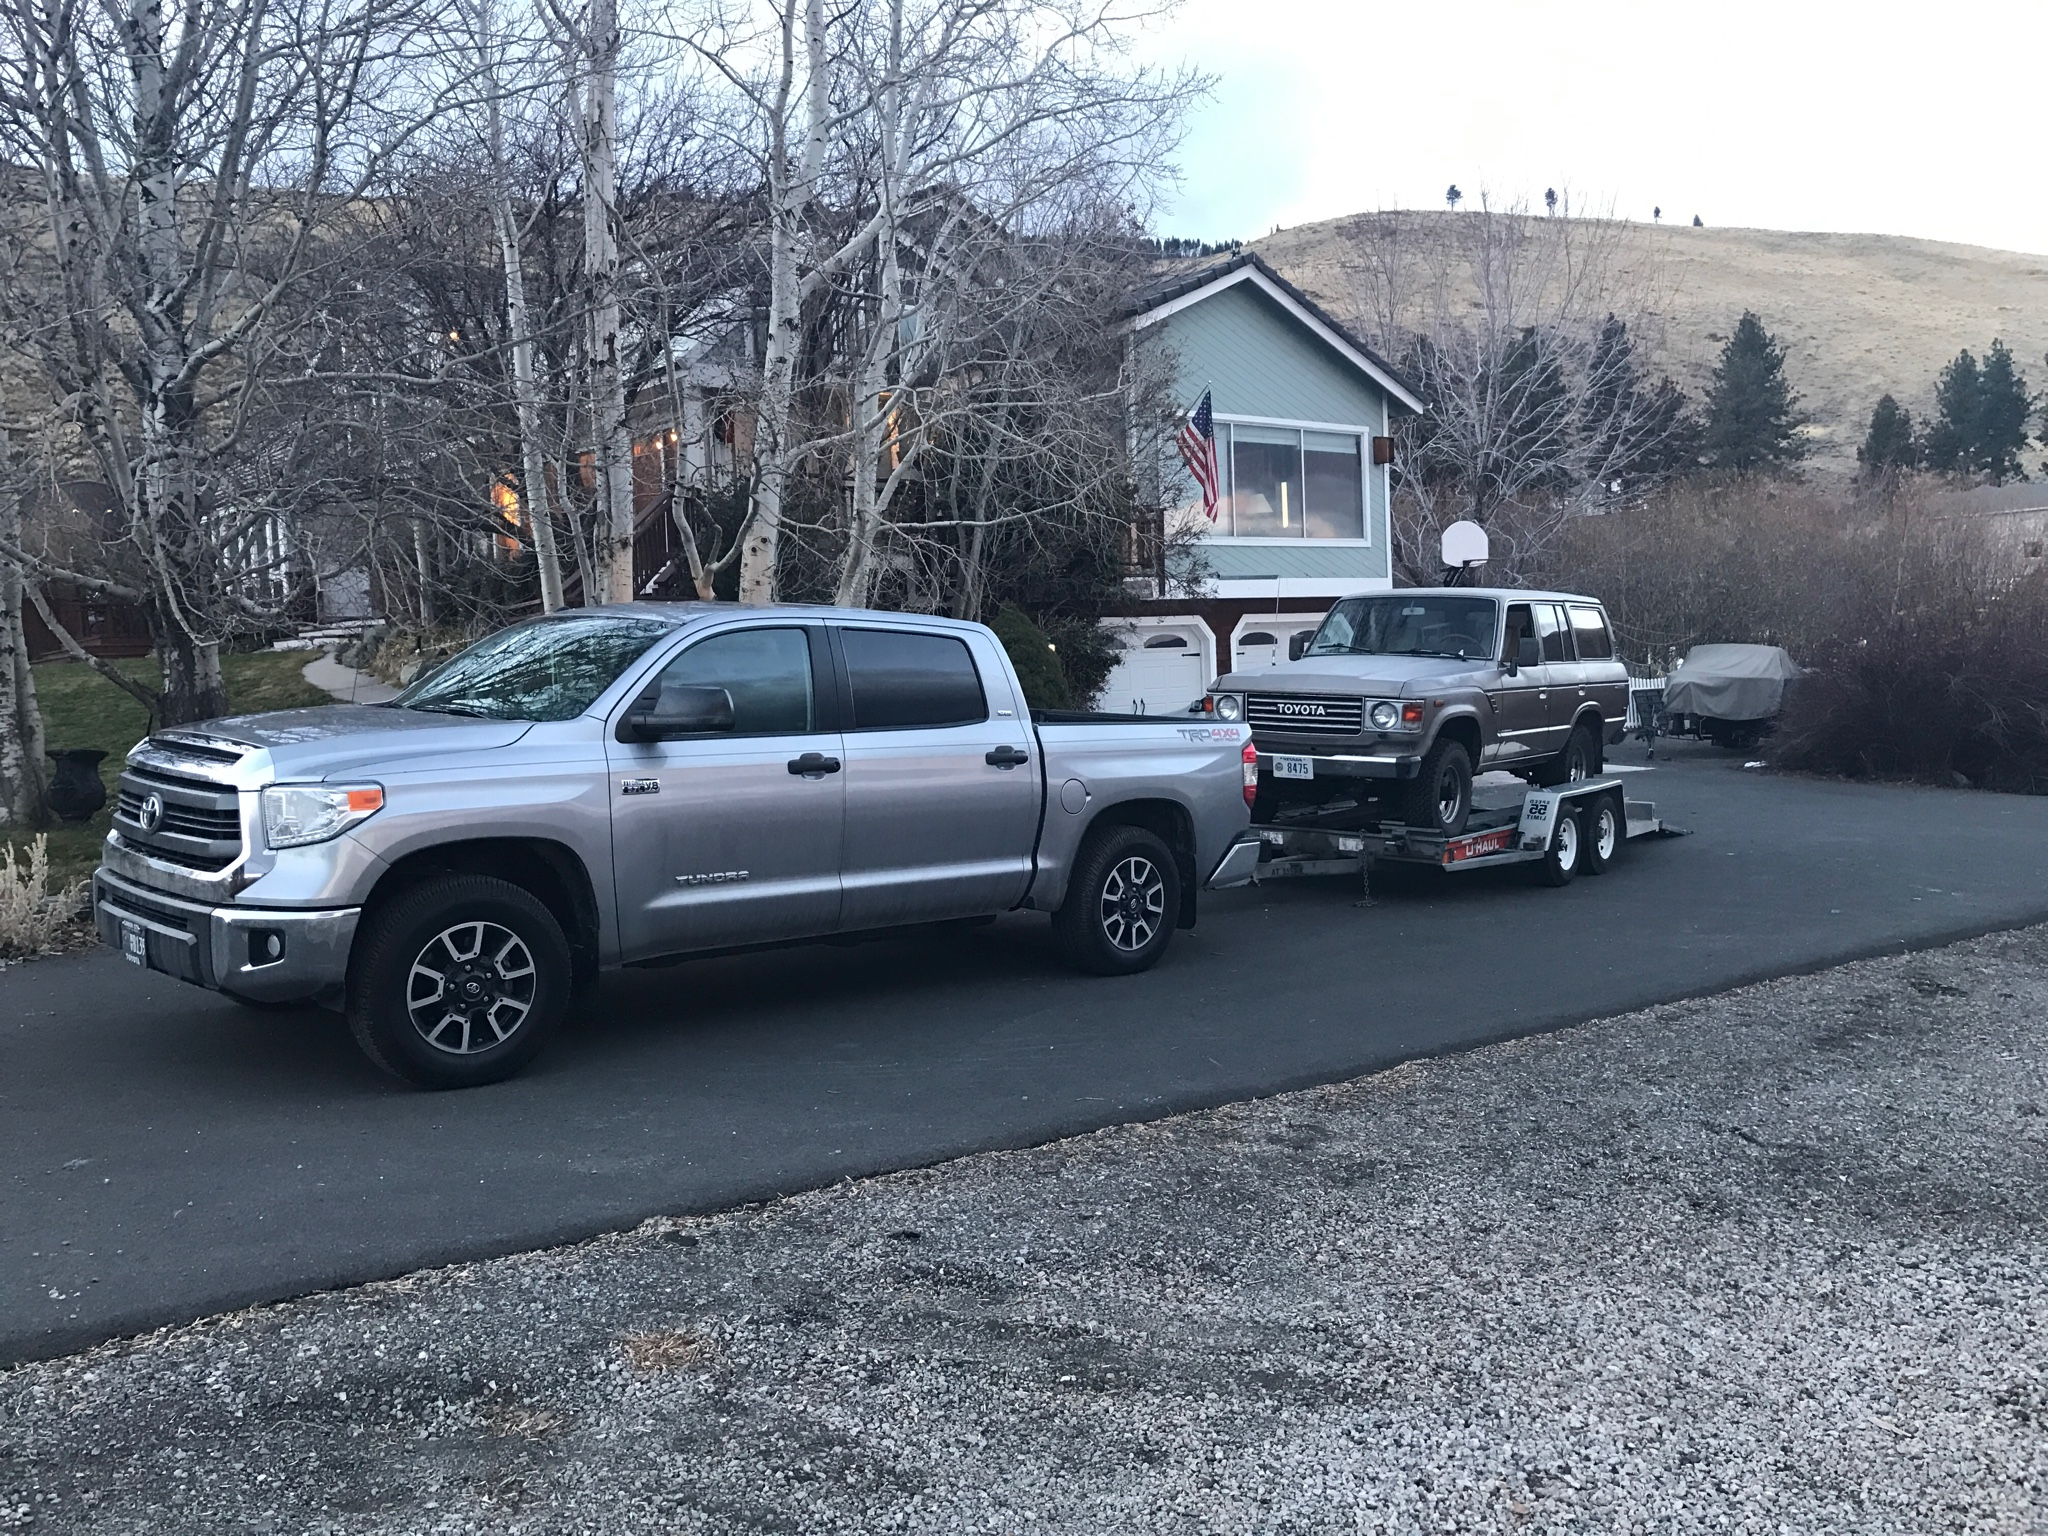 My crewmax got 12 13 towing my fj60 on a trailer that s crazy you re only getting 2 3 mpg better